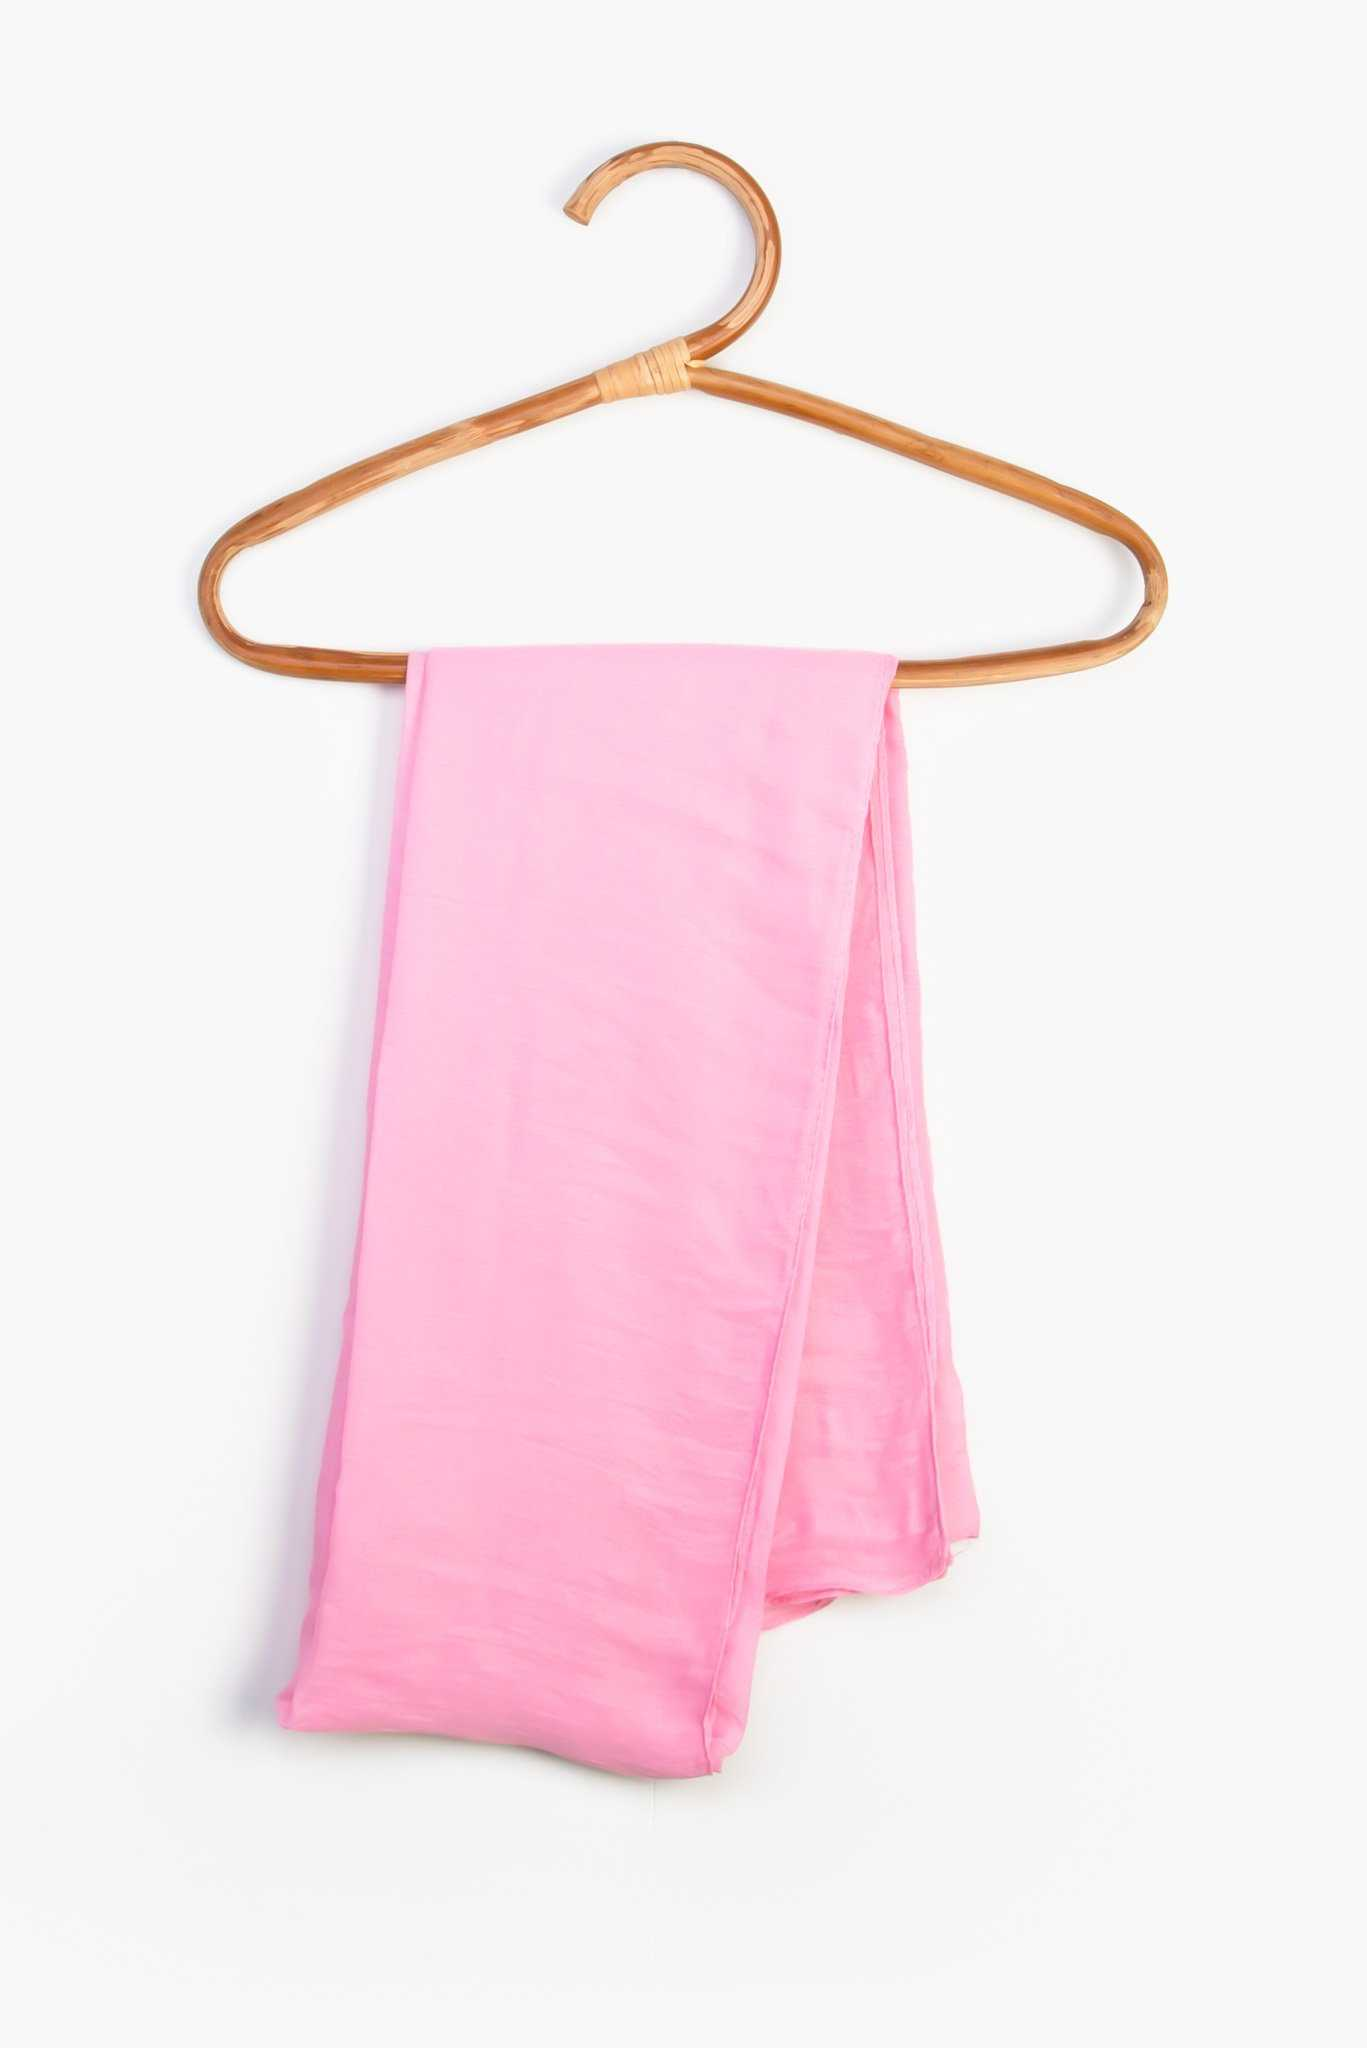 Scarf - Light Pink | Raw Orange